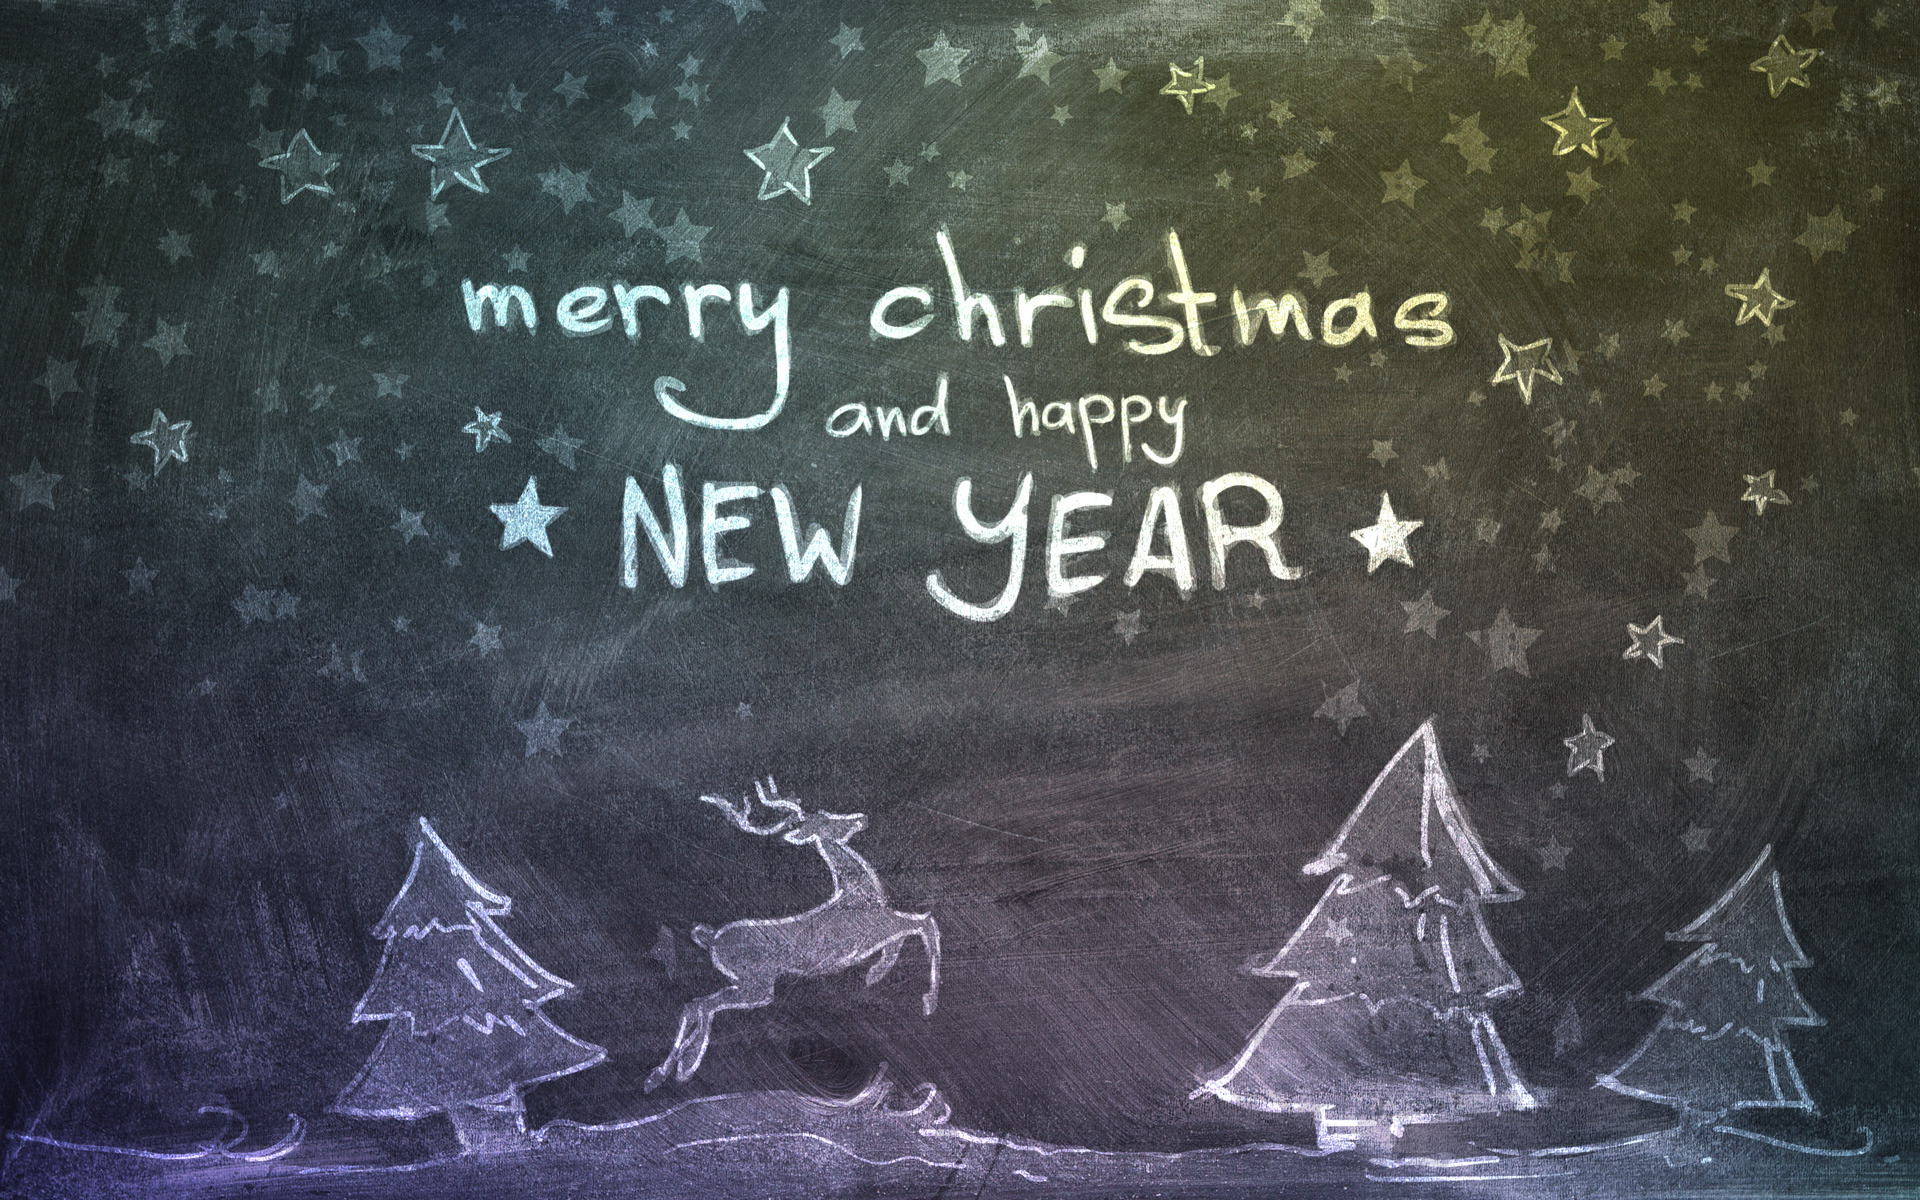 Merry Christmas And Happy New Year Wallpaper - Simple Merry Christmas And Happy New Year , HD Wallpaper & Backgrounds